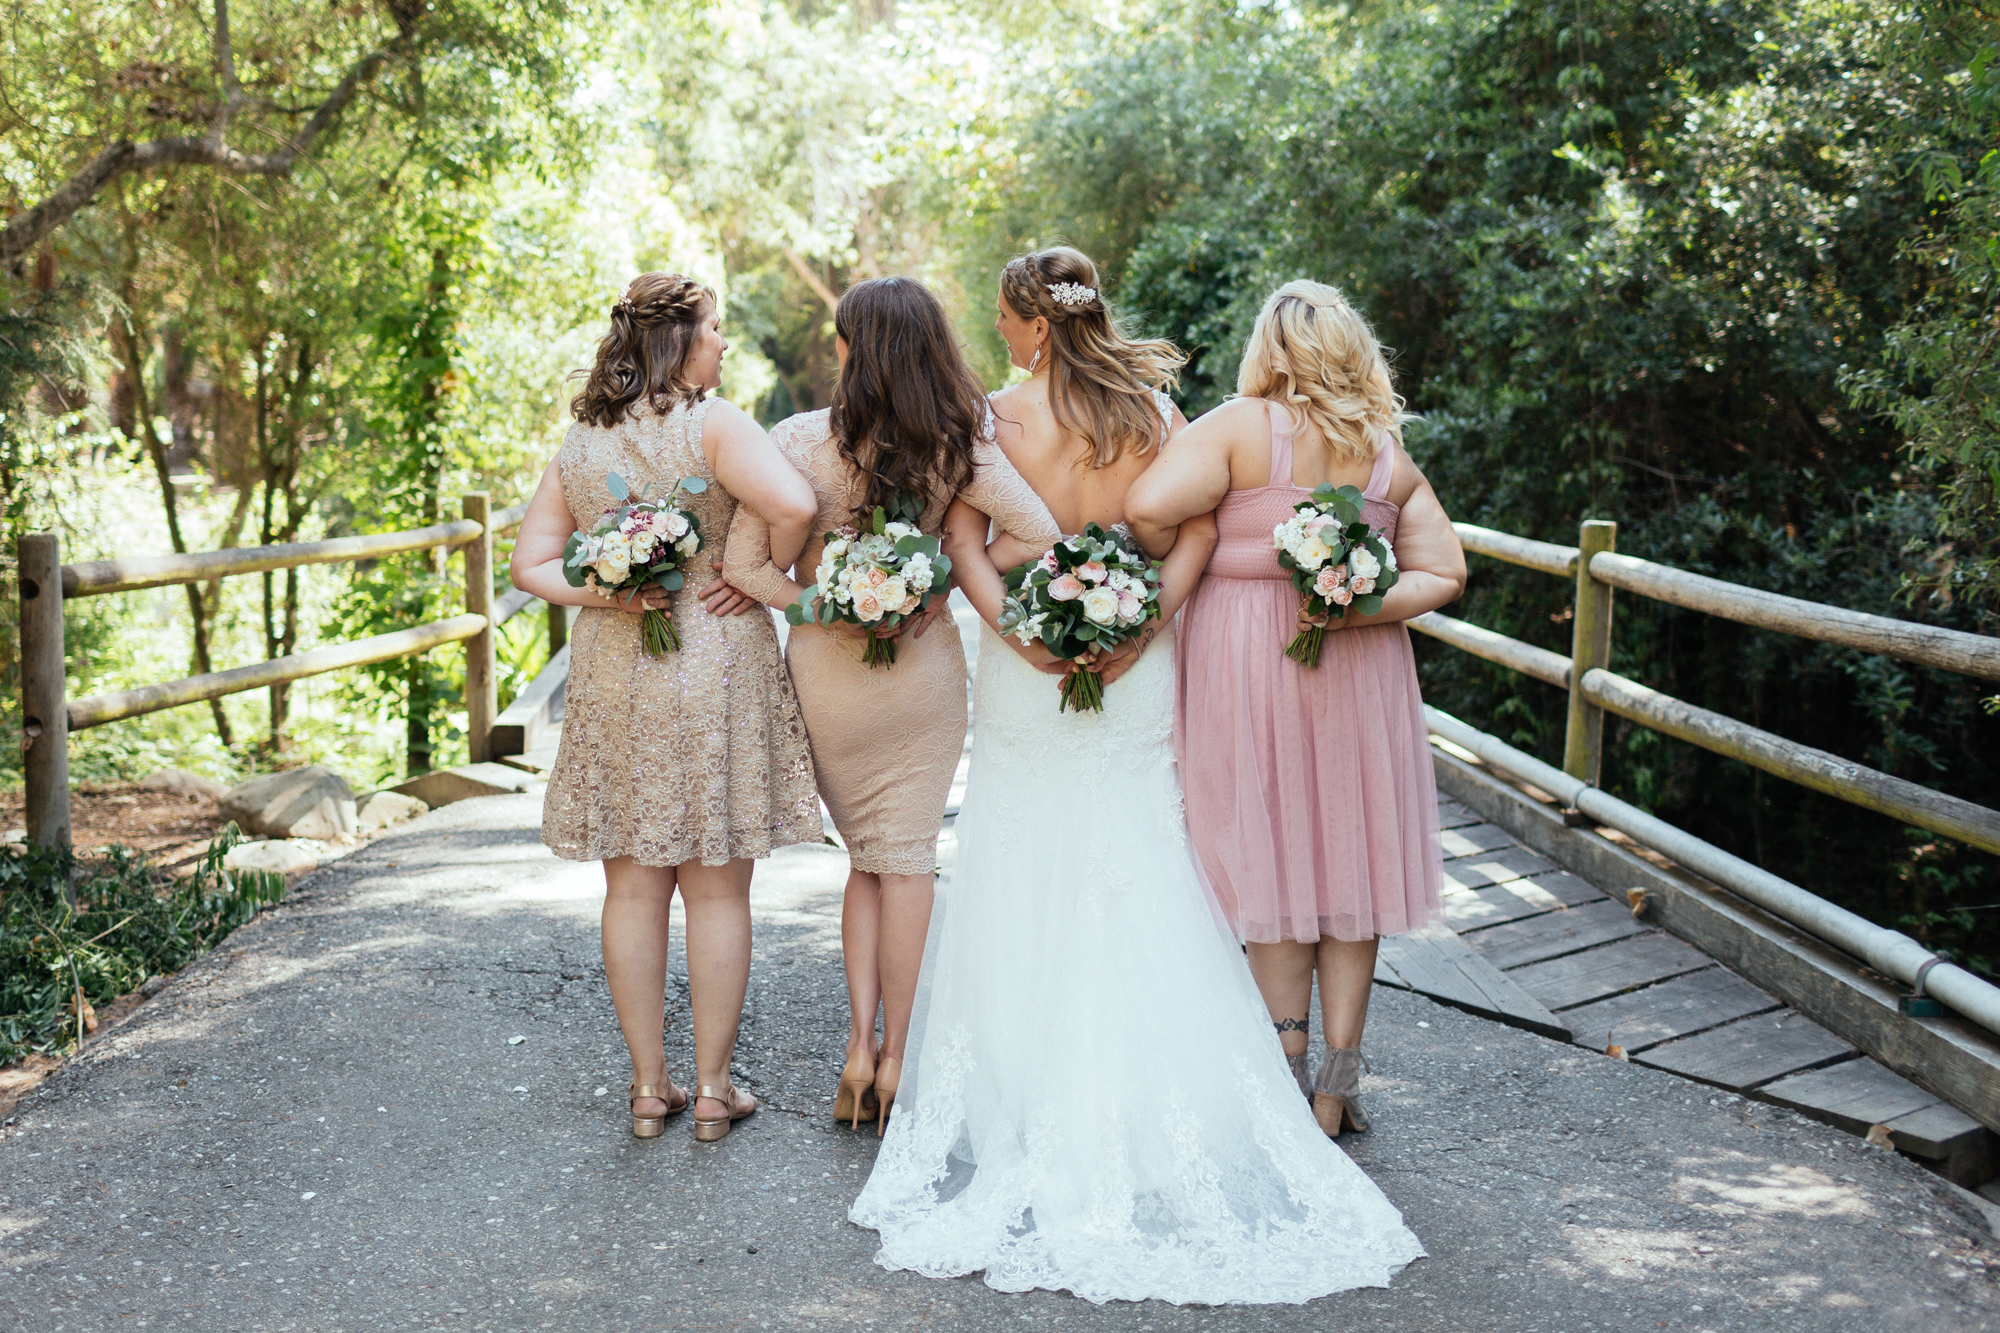 www.santabarbarawedding.com | Kaitie Brainerd Photo | Rancho Dos Pueblos | Bridesmaids